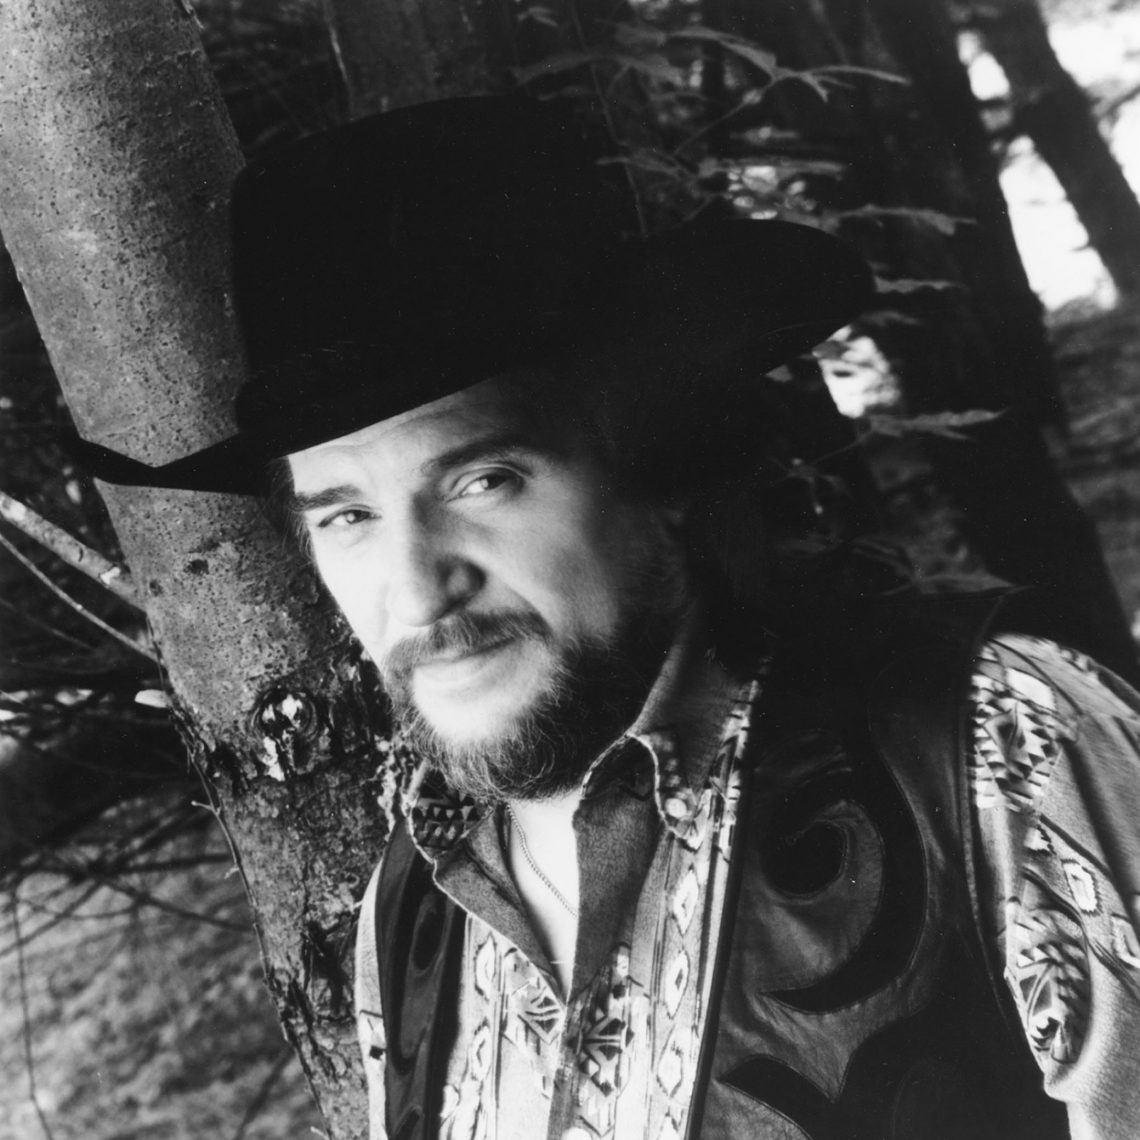 Waylon in the '90s (Photo by David Roth/Sony BMG Music Entertainment)